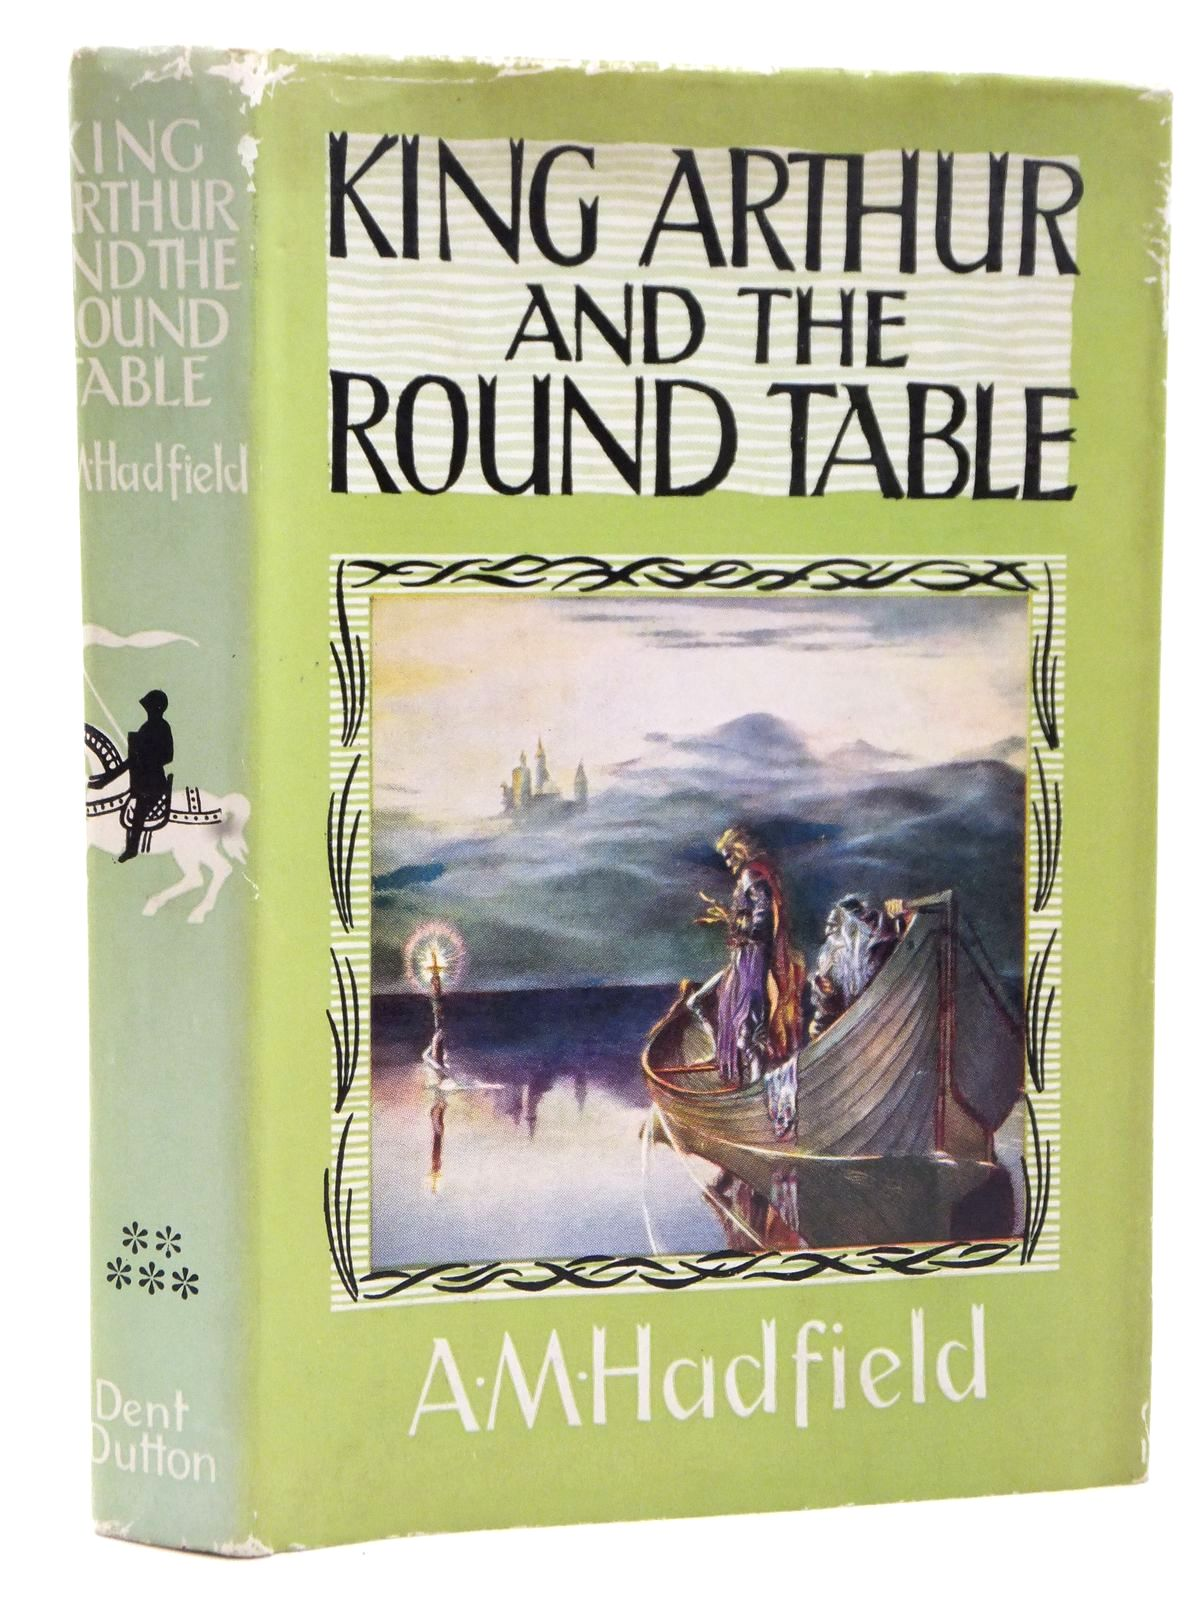 Photo of KING ARTHUR AND THE ROUND TABLE written by Hadfield, Alice Mary illustrated by Cammell, Donald Seton published by J.M. Dent & Sons Ltd. (STOCK CODE: 2123011)  for sale by Stella & Rose's Books